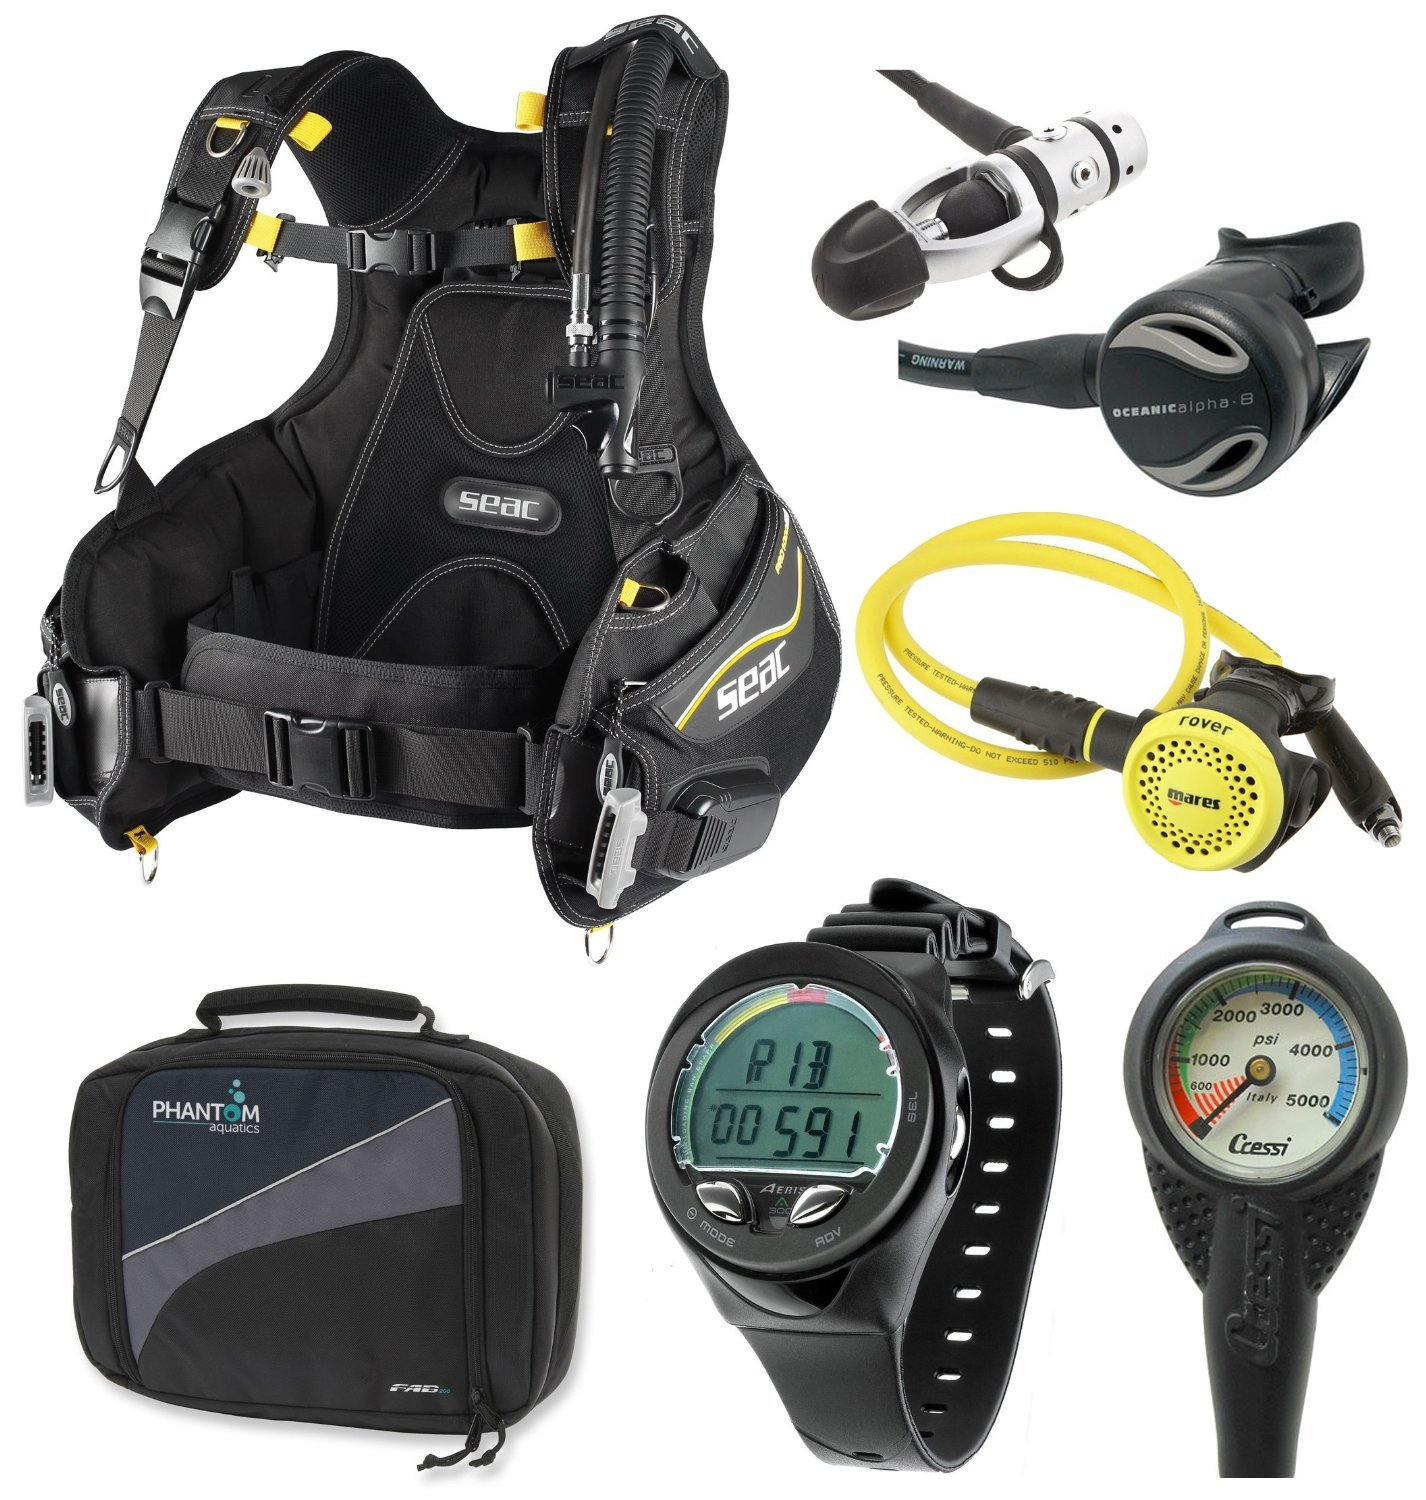 scuba diving gear and accessories